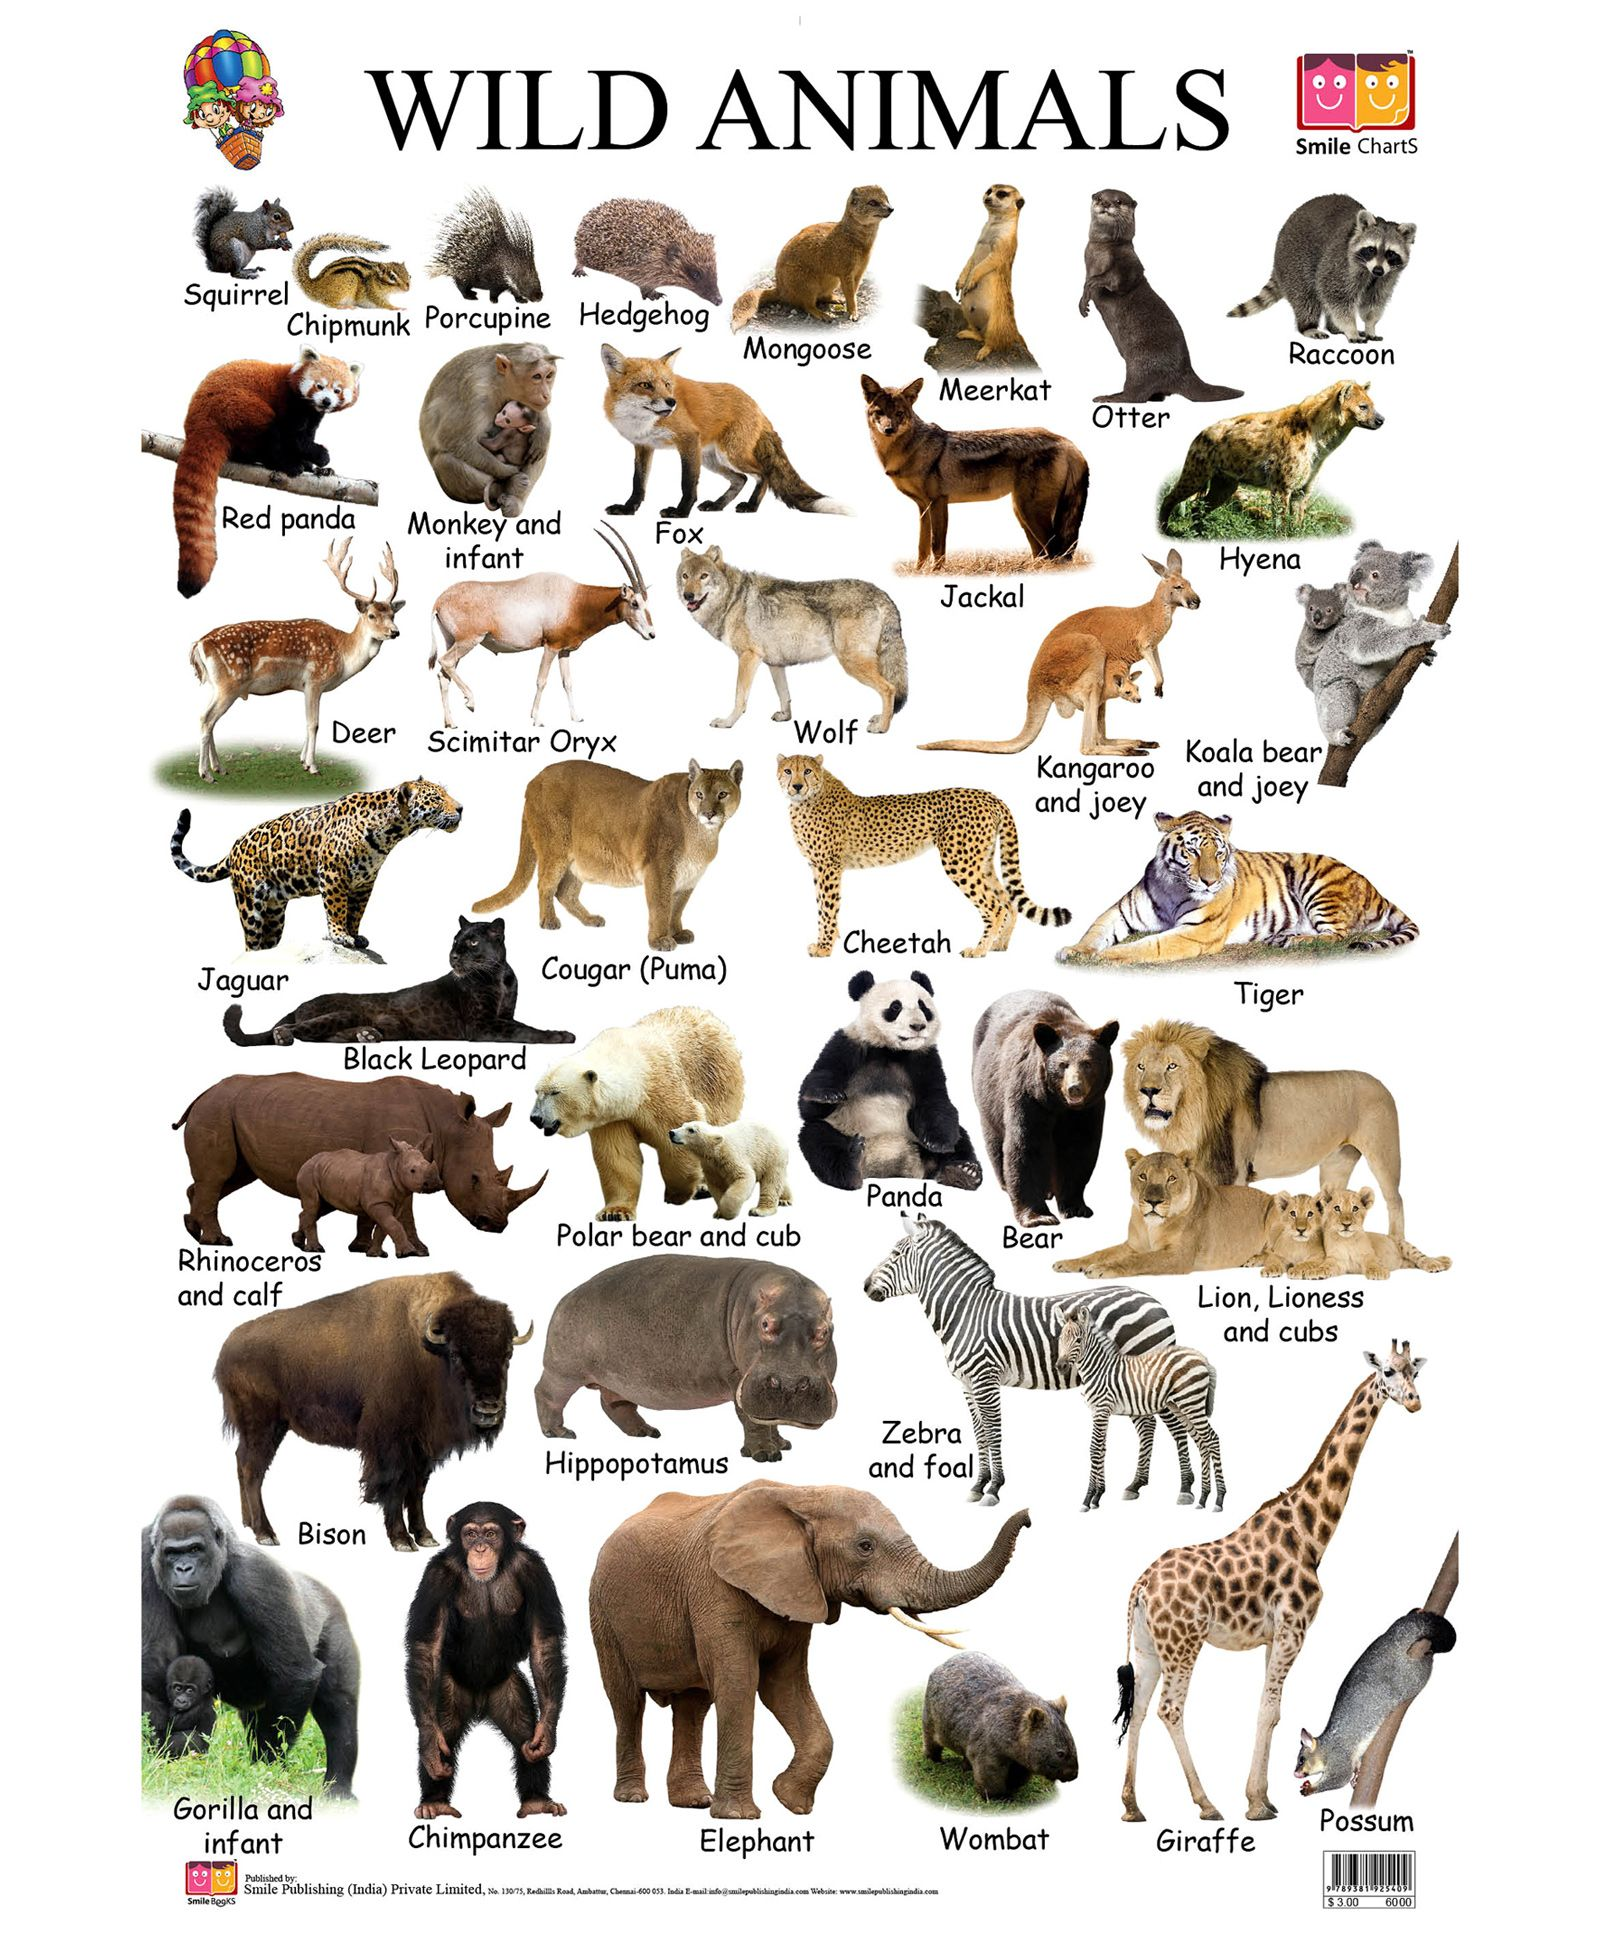 Wild Animal Images With Name Animals name in english